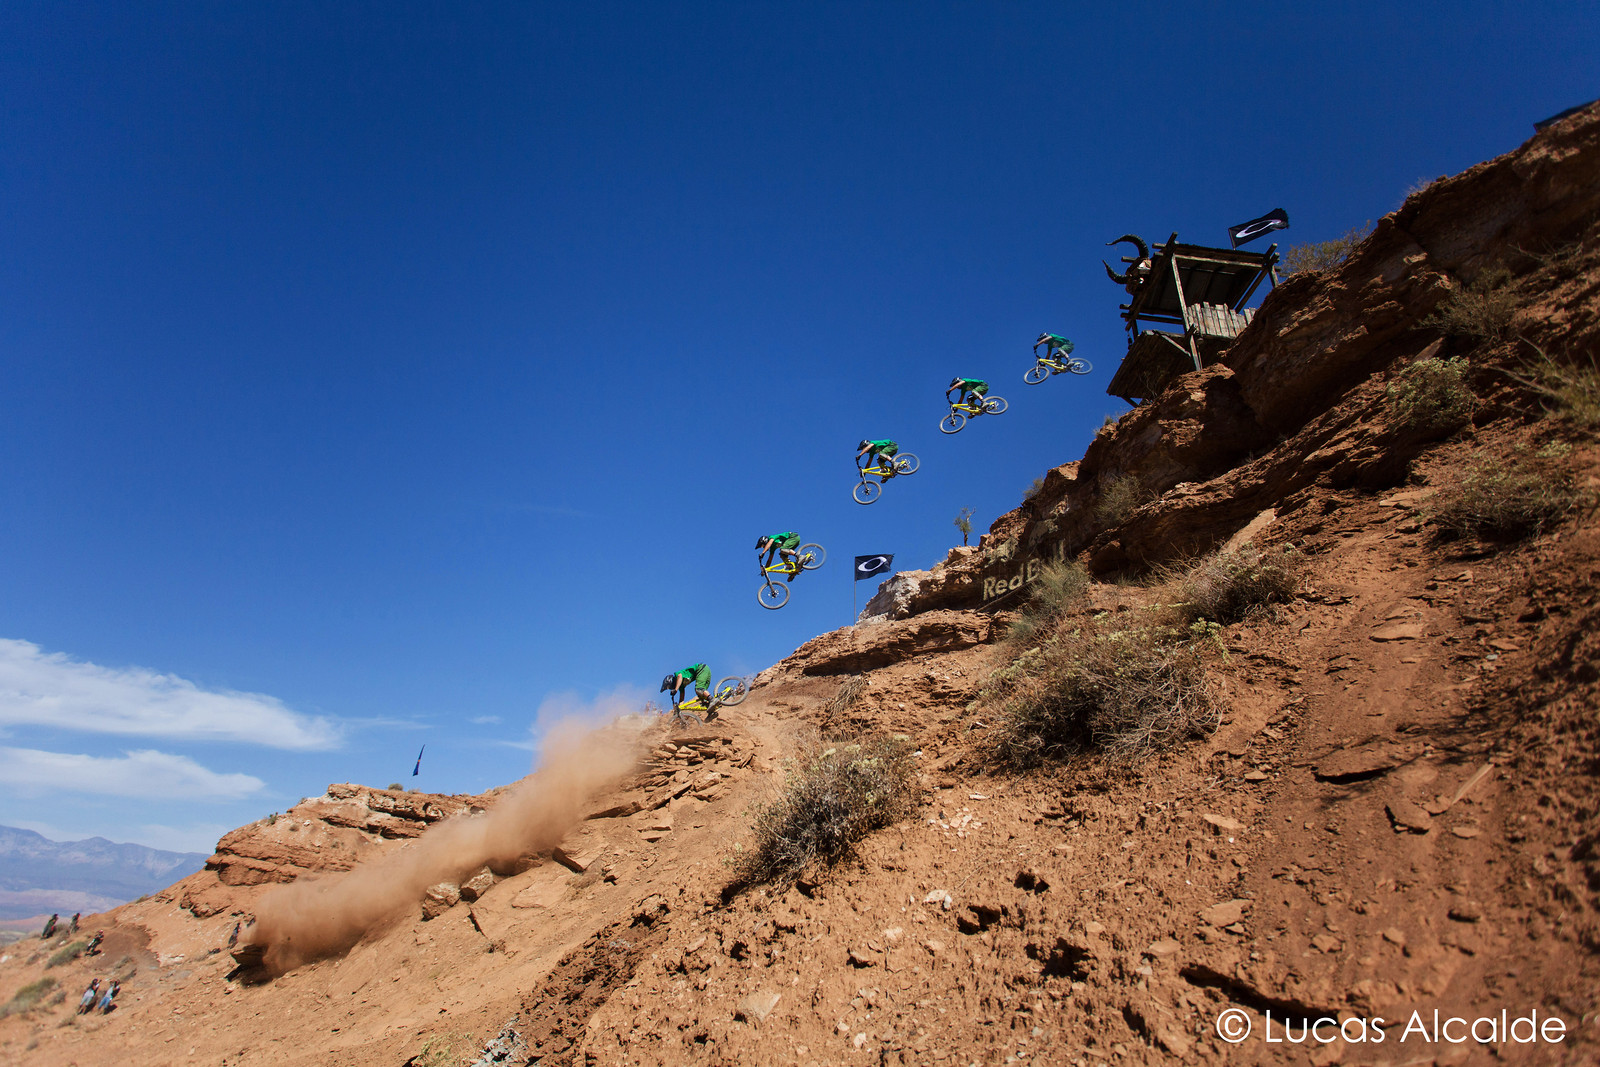 Mike Kinrade went BIG, not home! - Lucas_Alcalde - Mountain Biking Pictures - Vital MTB